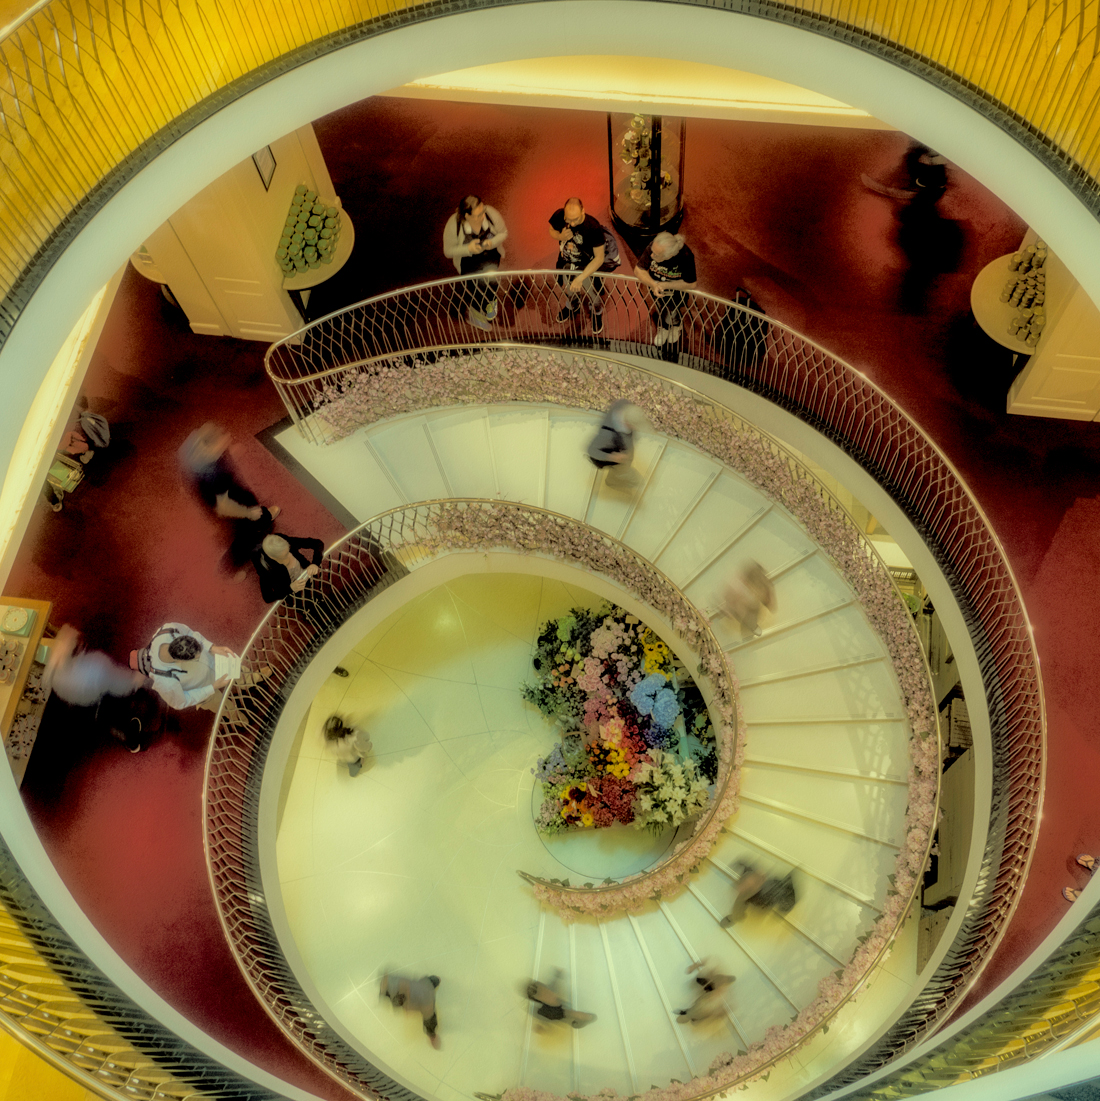 Staircase with People